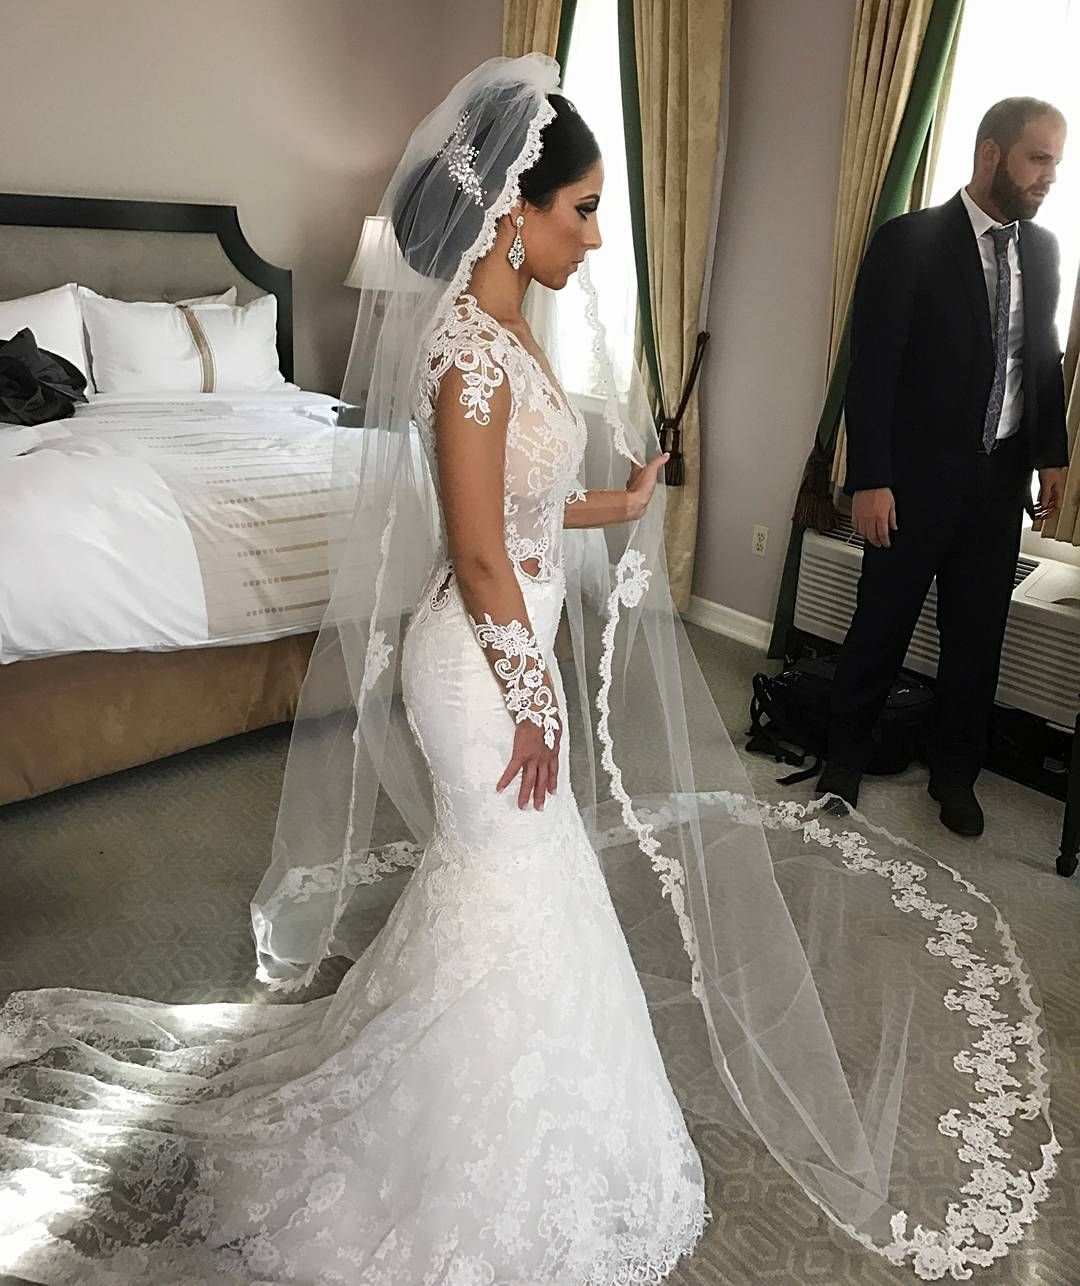 1000+ images about Beautiful Veils on Pinterest | Veils ... |Beautiful Wedding Gowns With Veils